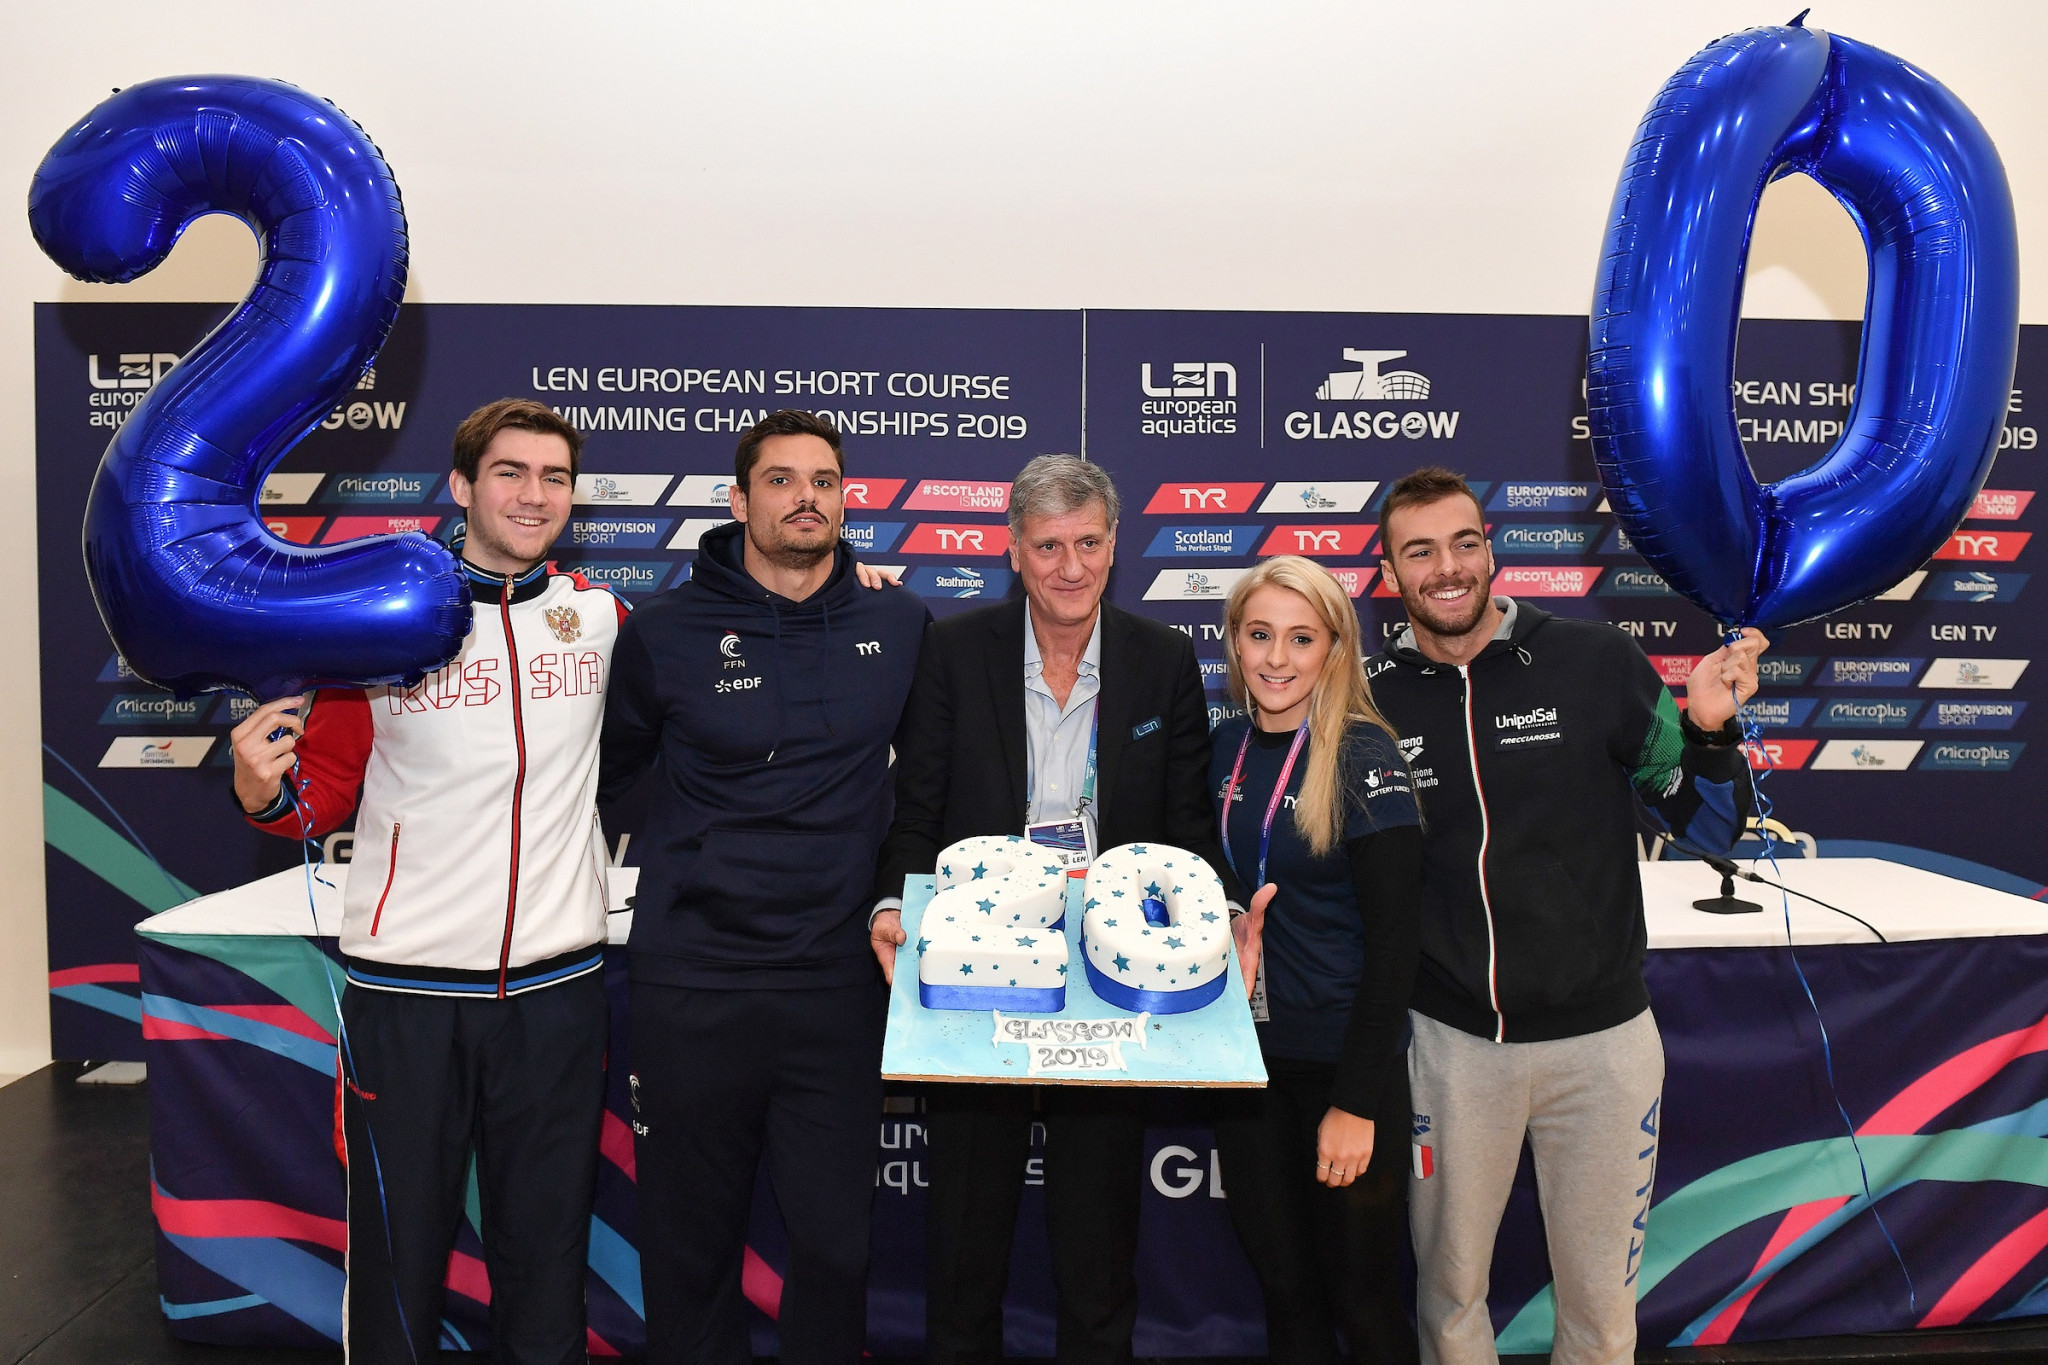 Glasgow will be hosting the 20th edition of the European Short Course Swimming Championships ©Glasgow 2019